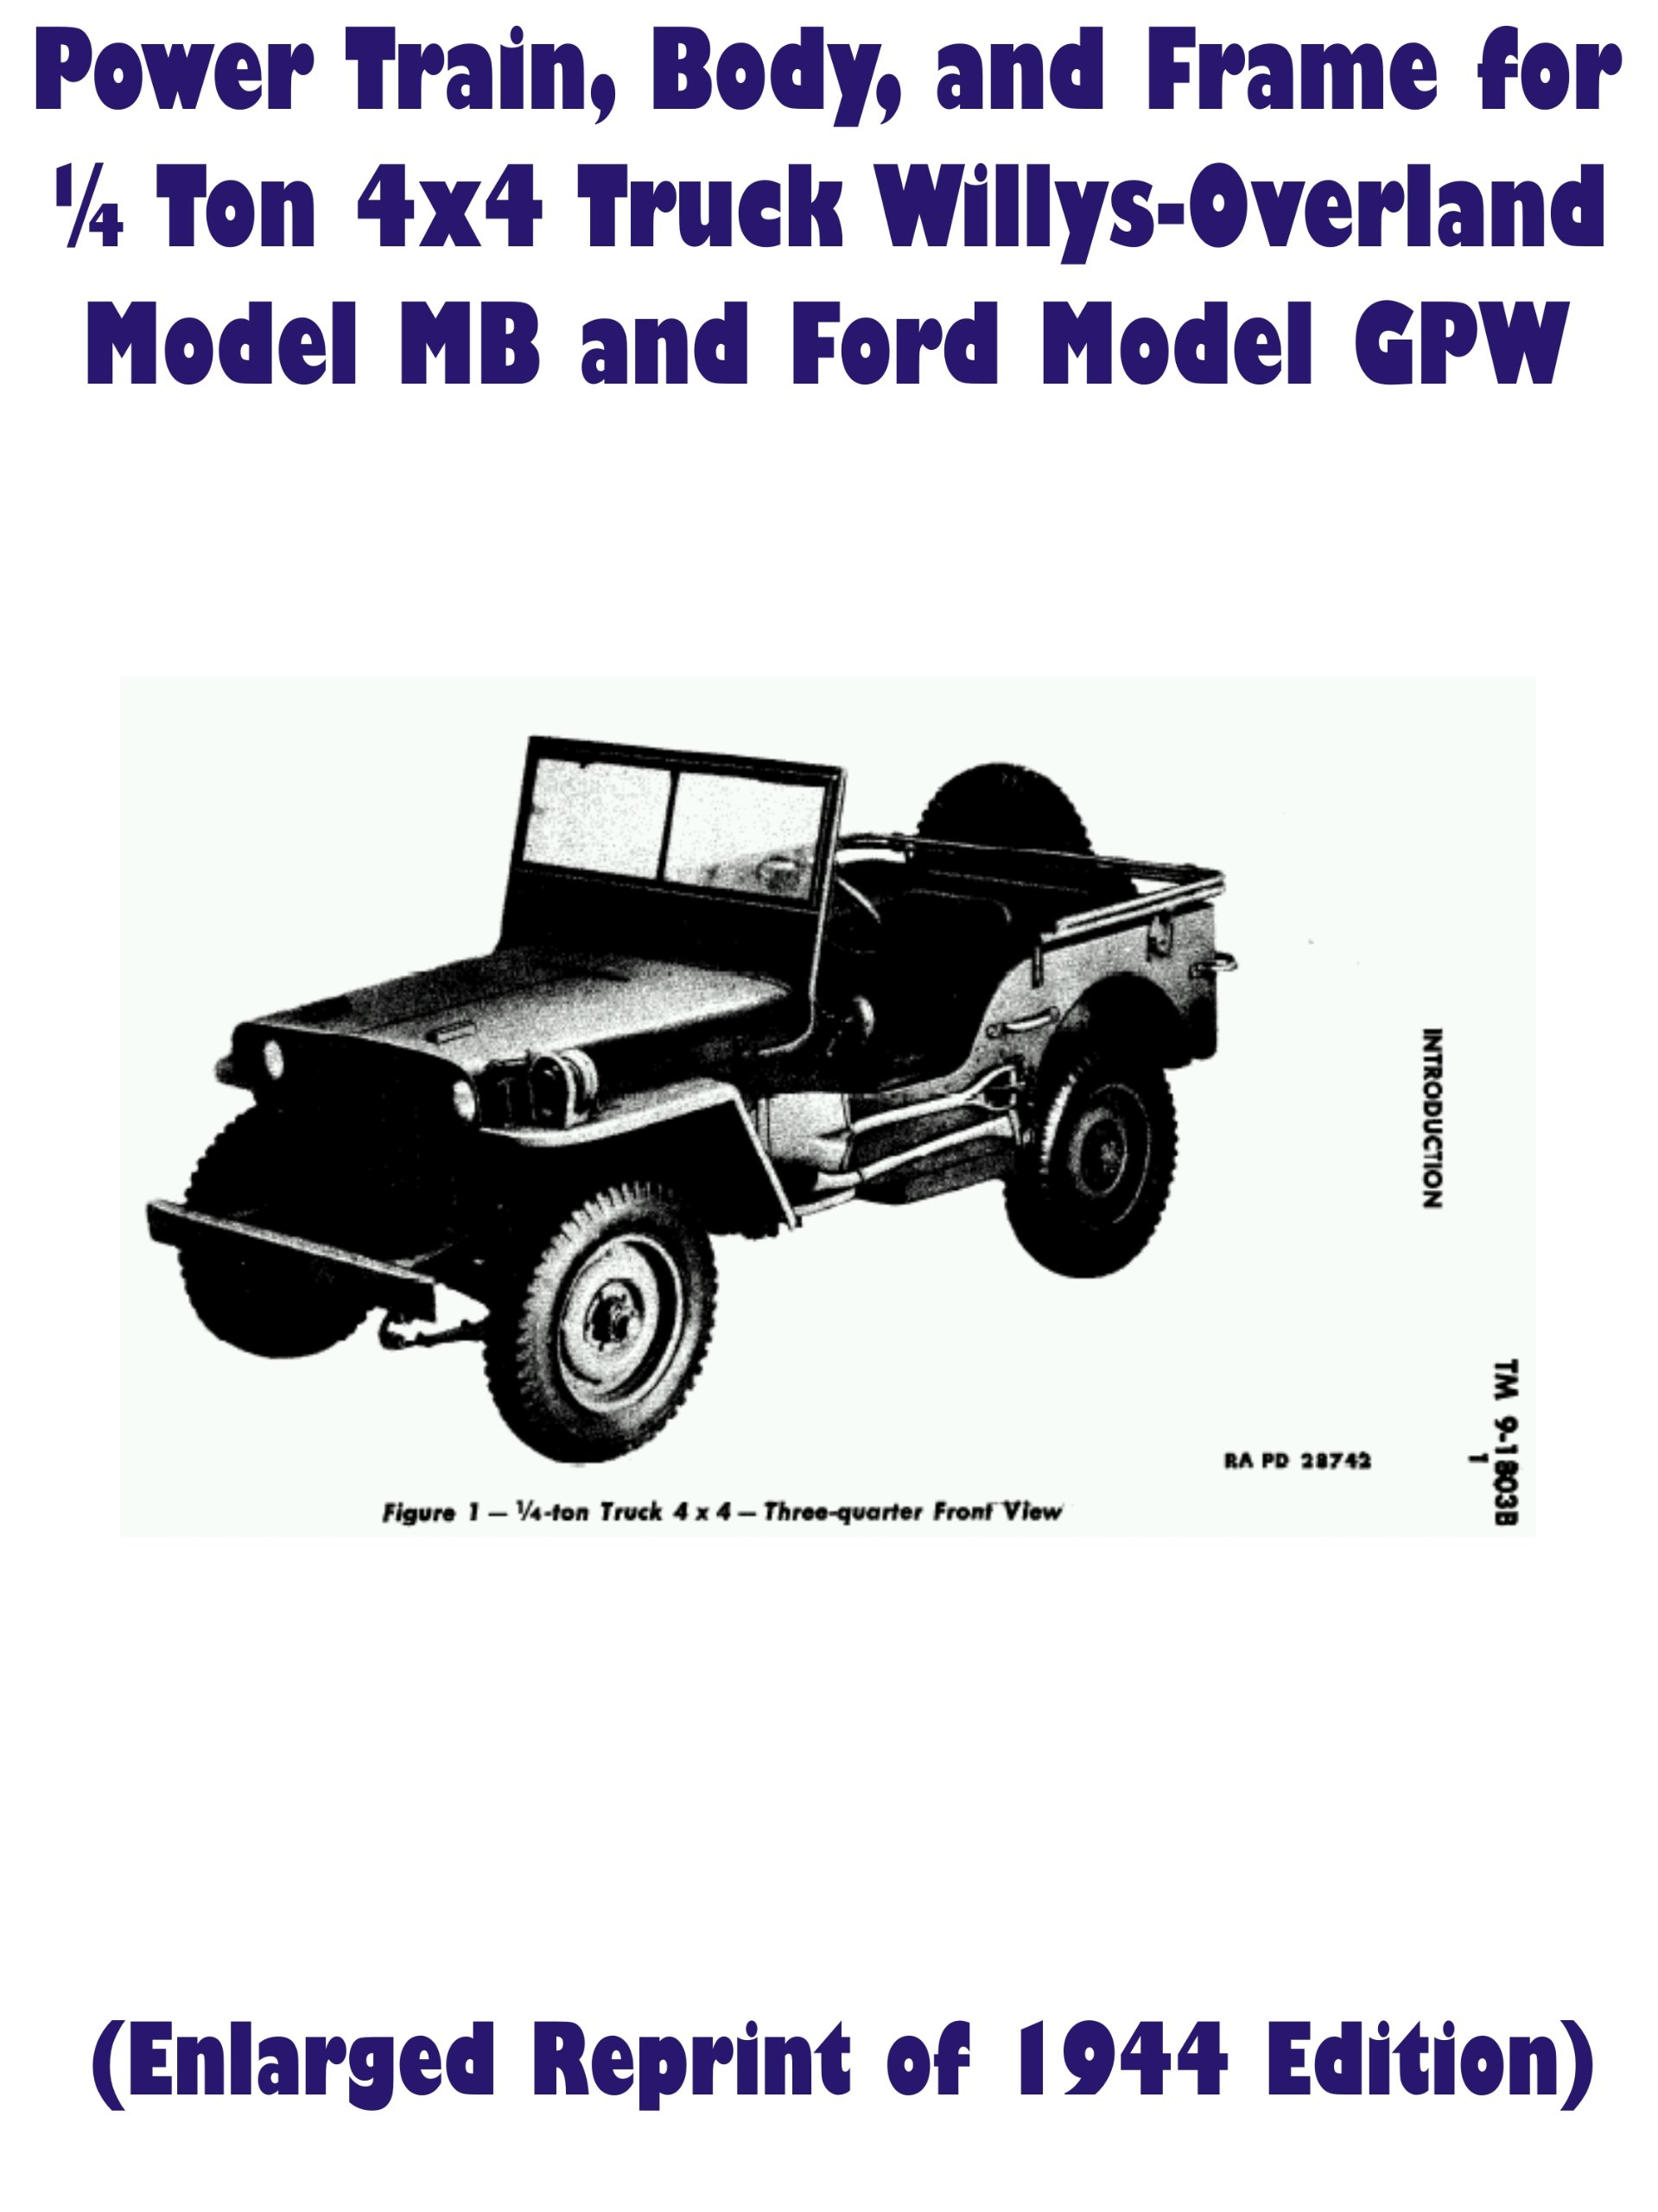 TM9-1803B Power Train, Body, and Frame for Quarter Ton 4x4 Truck Willys-Overland Model MB and Ford Model GPW (Reprint of 1944 Edition) pdf epub